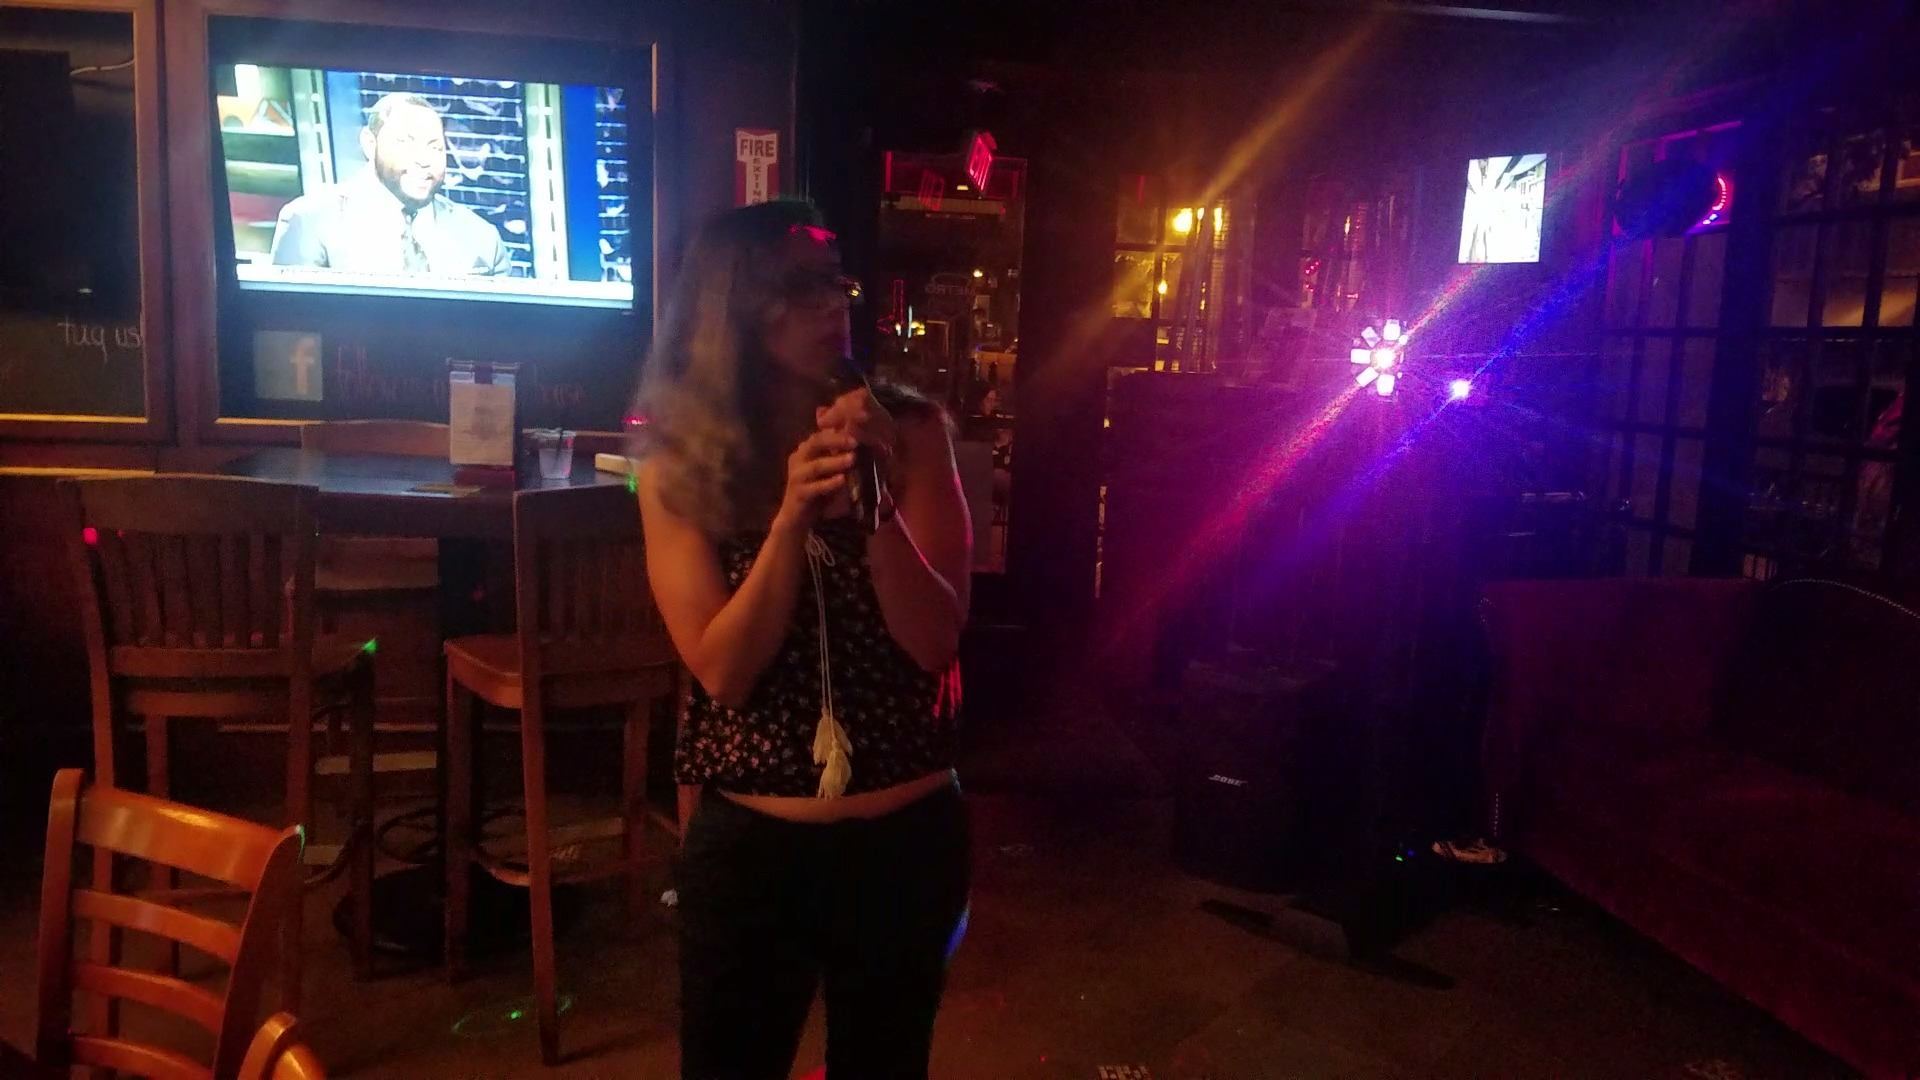 Jazzlynn singing Black Velvet by Alannah Myles